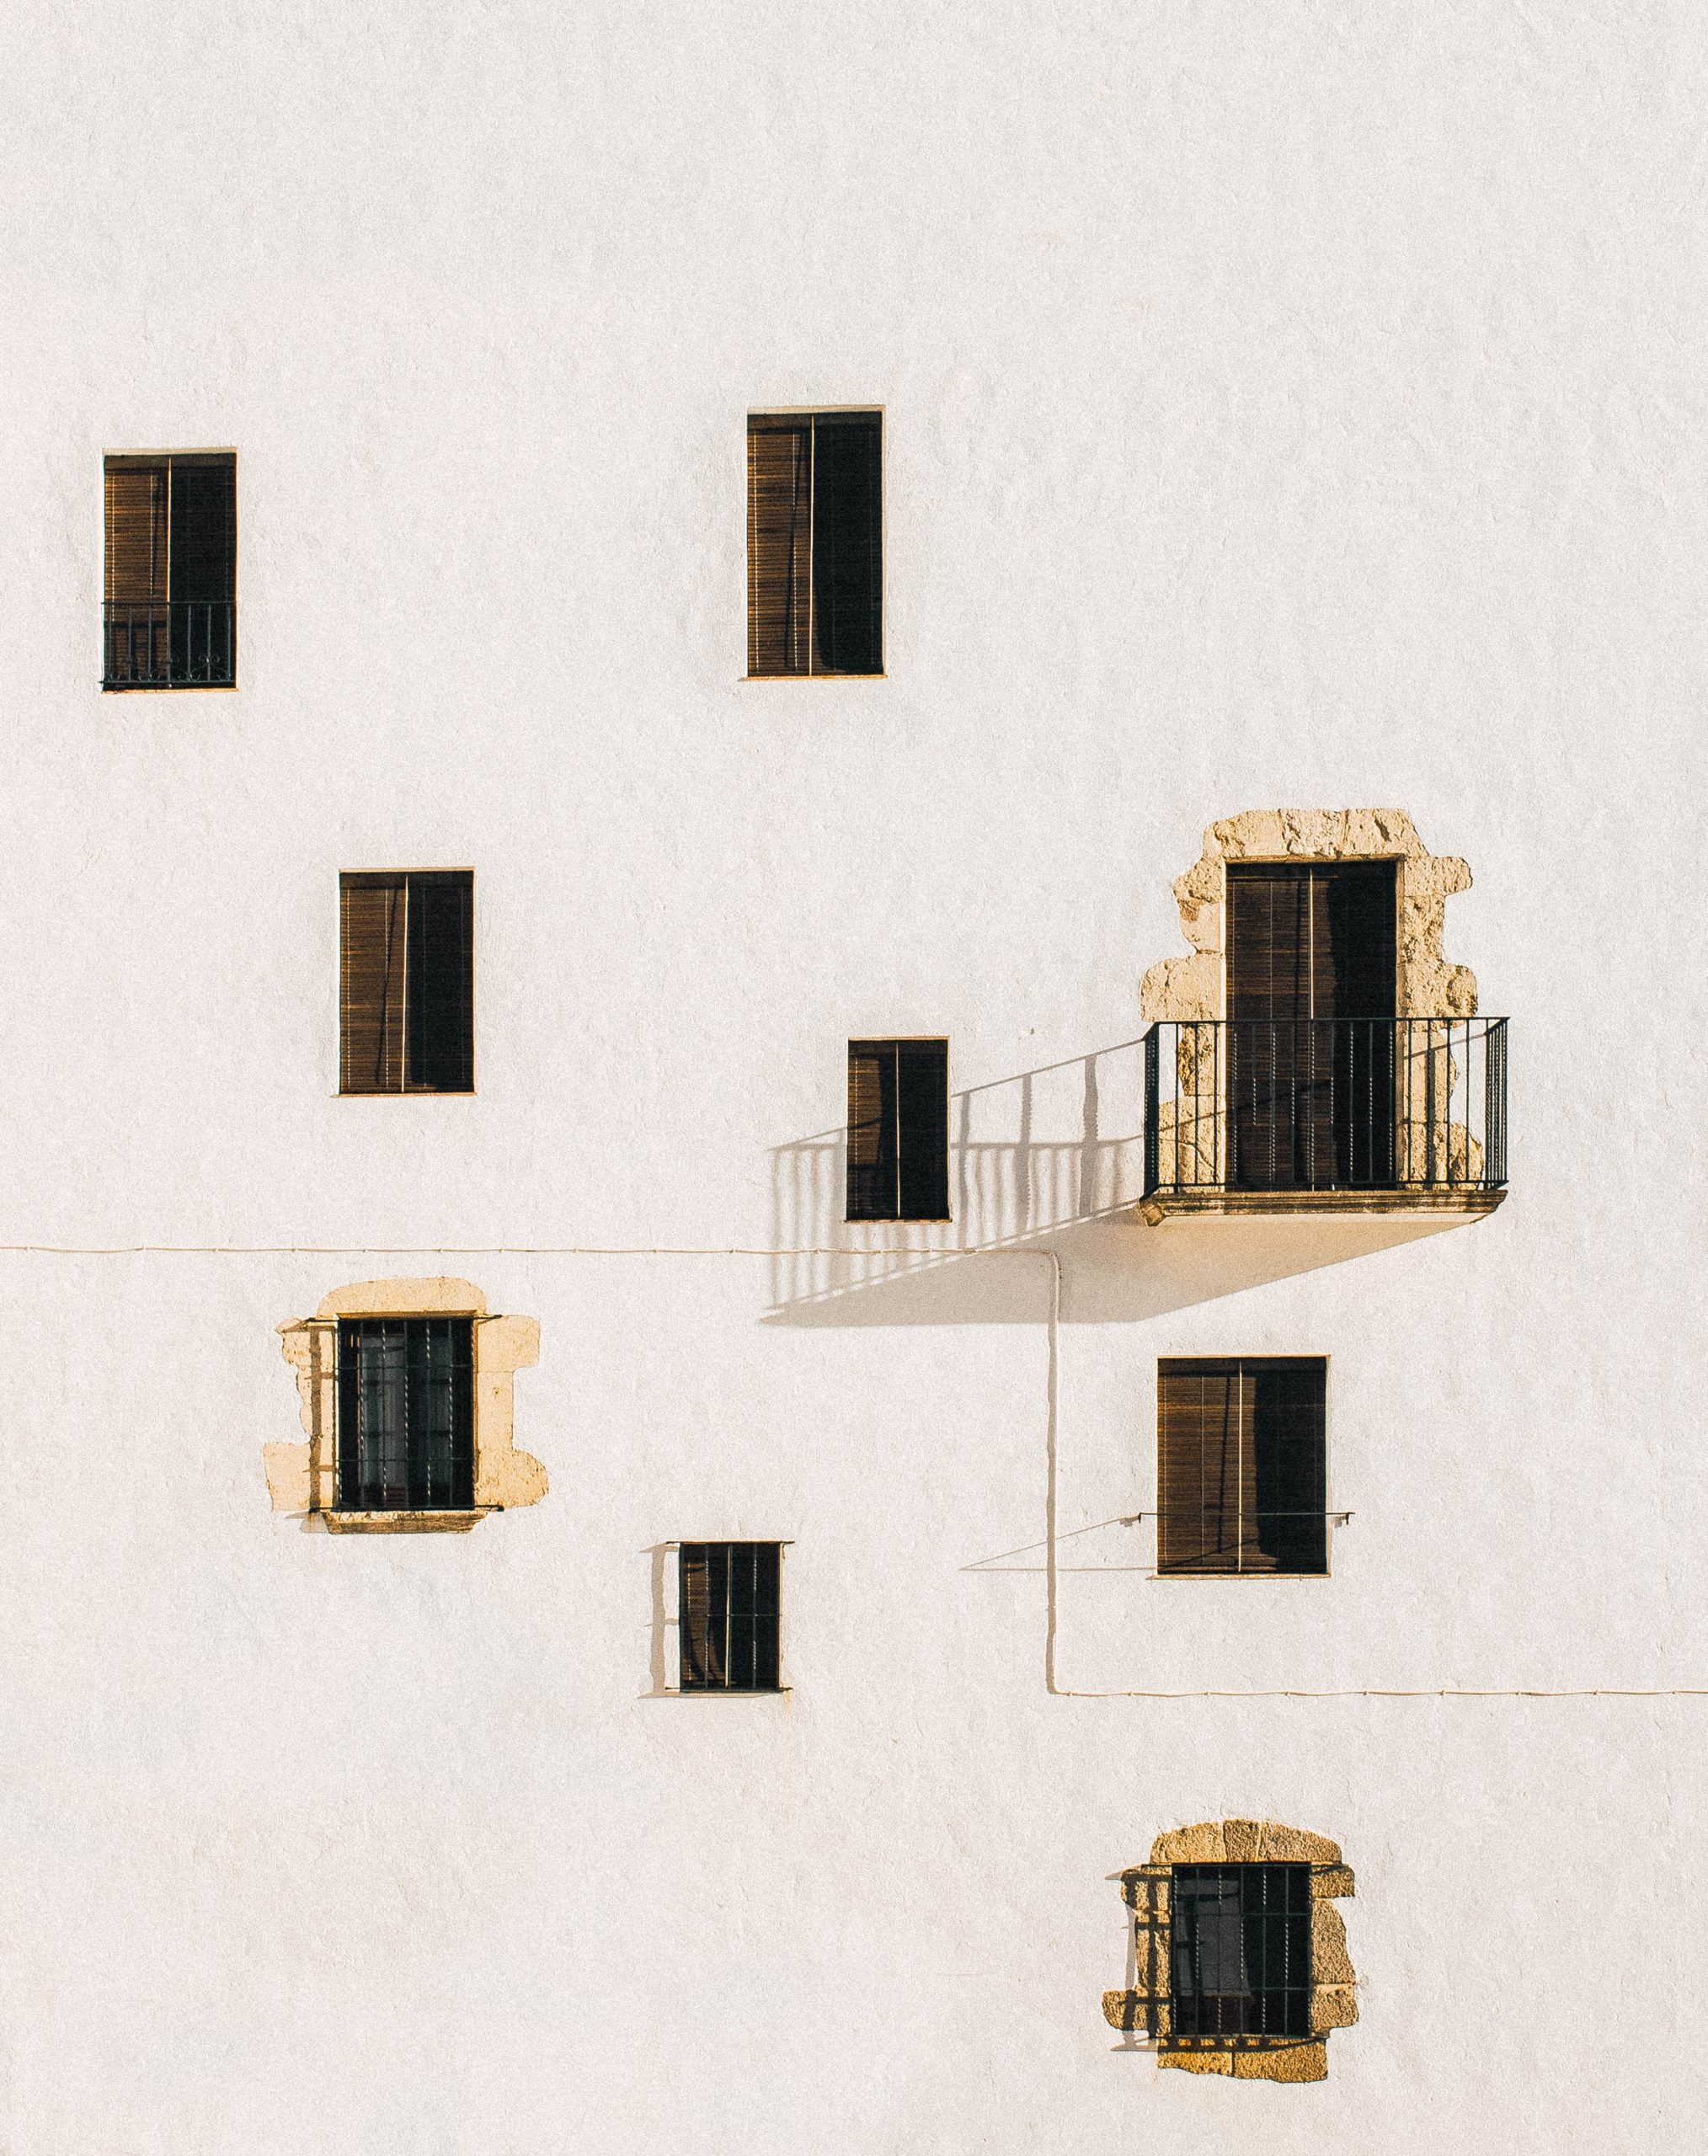 pexels jeffrey czum 3499125 scaled - How Many Bedrooms Should Your Buy-To-Let Property Have?